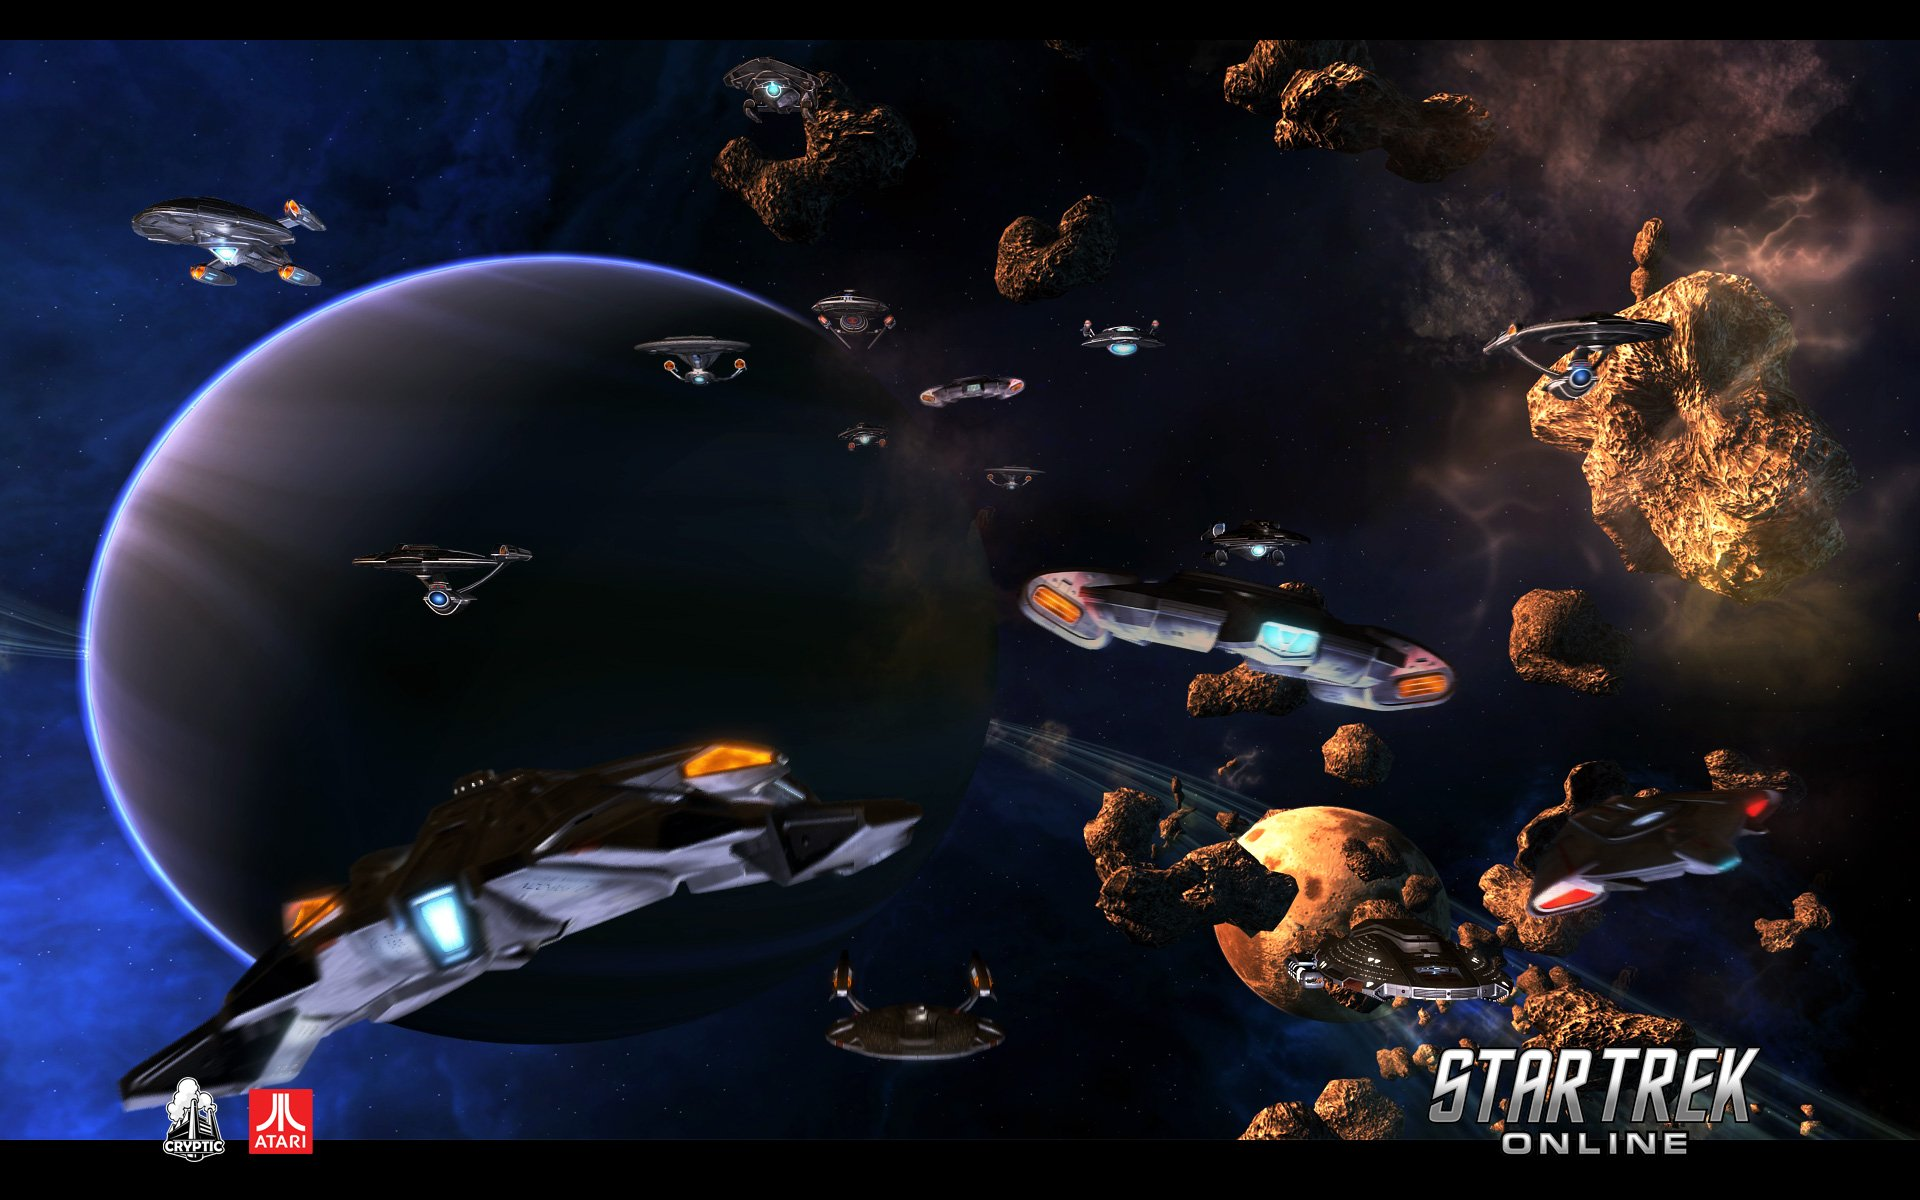 about star trek online in star trek online the star trek universe 1920x1200